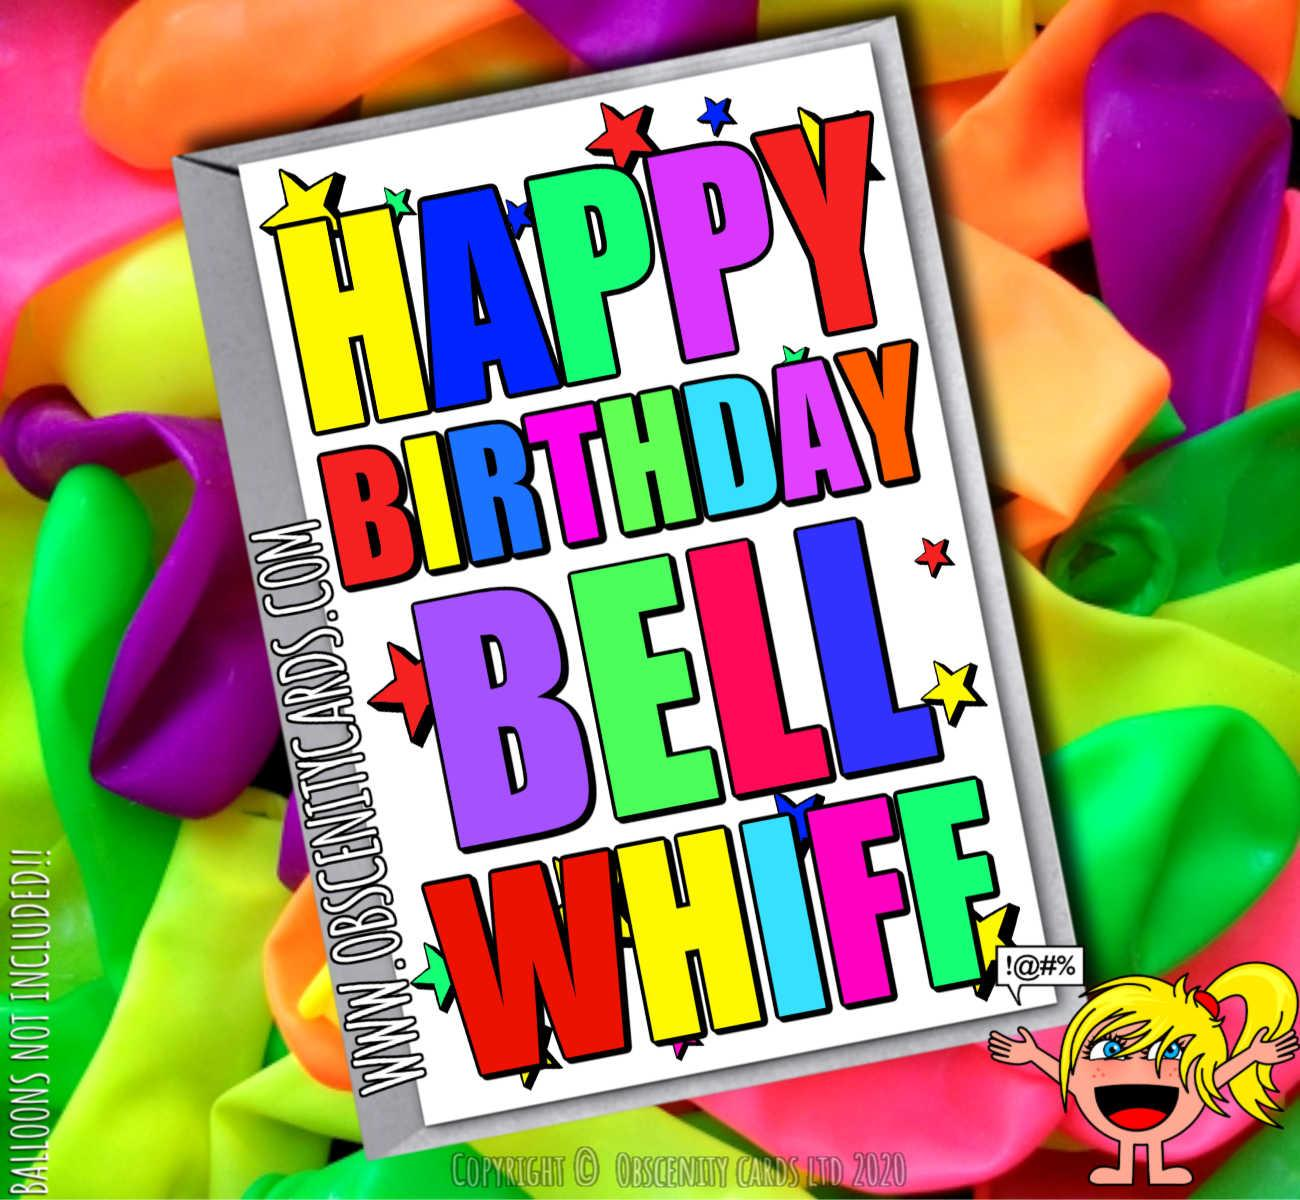 HAPPY BIRTHDAY BELL WHIFF FUNNY CARD